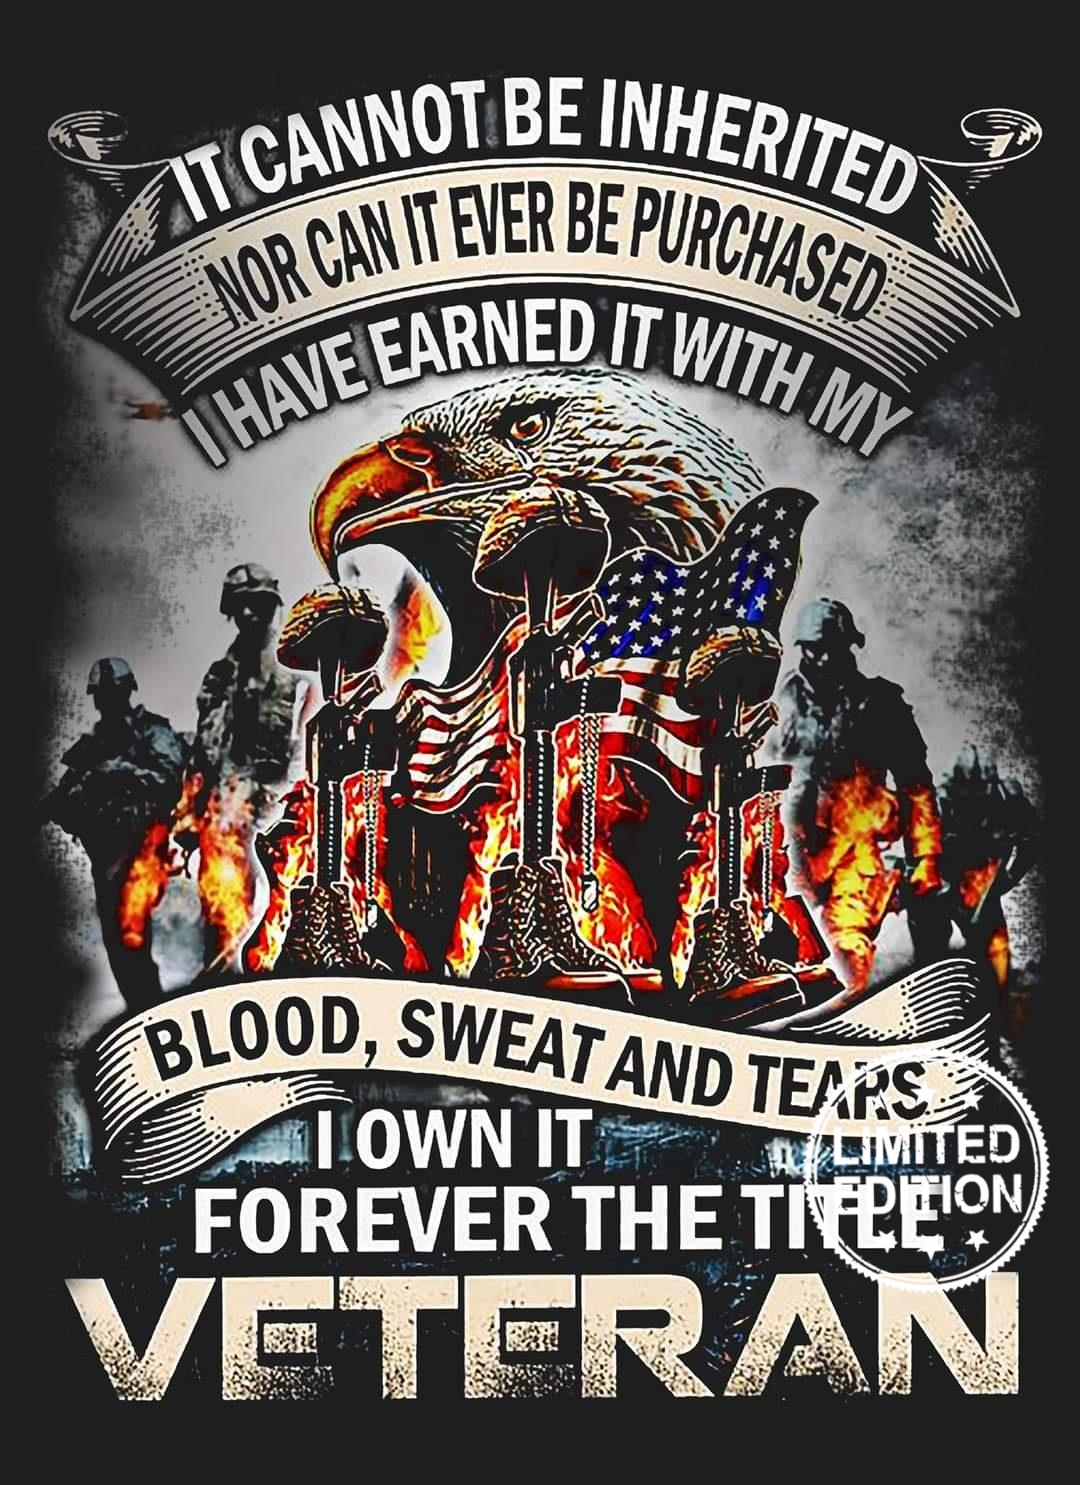 It cannot be inherited nor can it ever be purchased i have earned it with my shirt